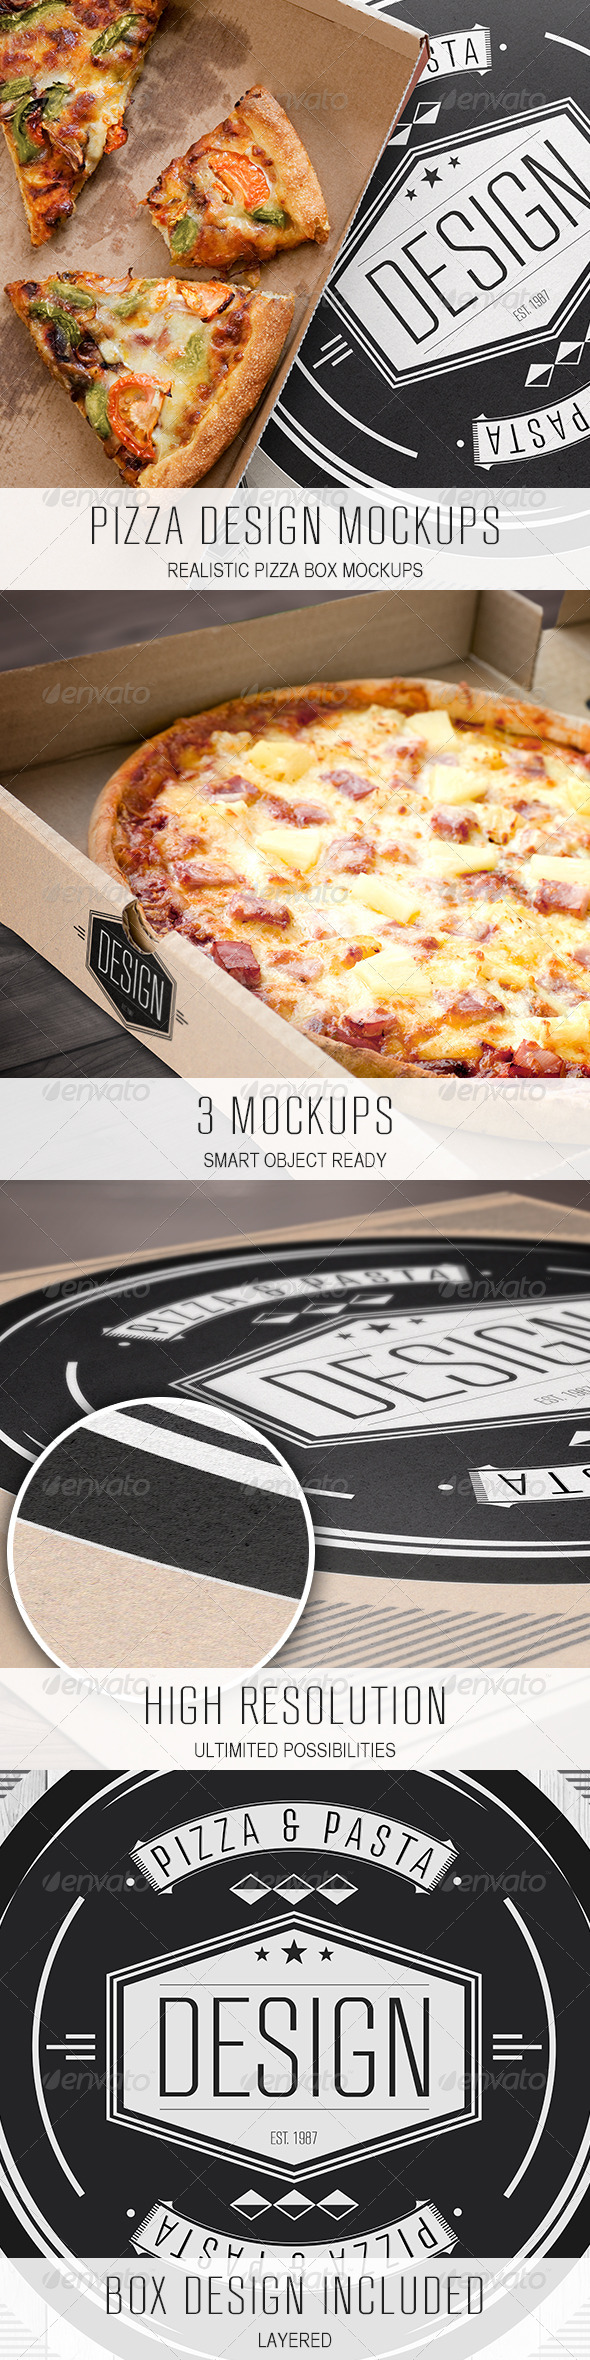 GraphicRiver Pizza Design Mockups 3787281